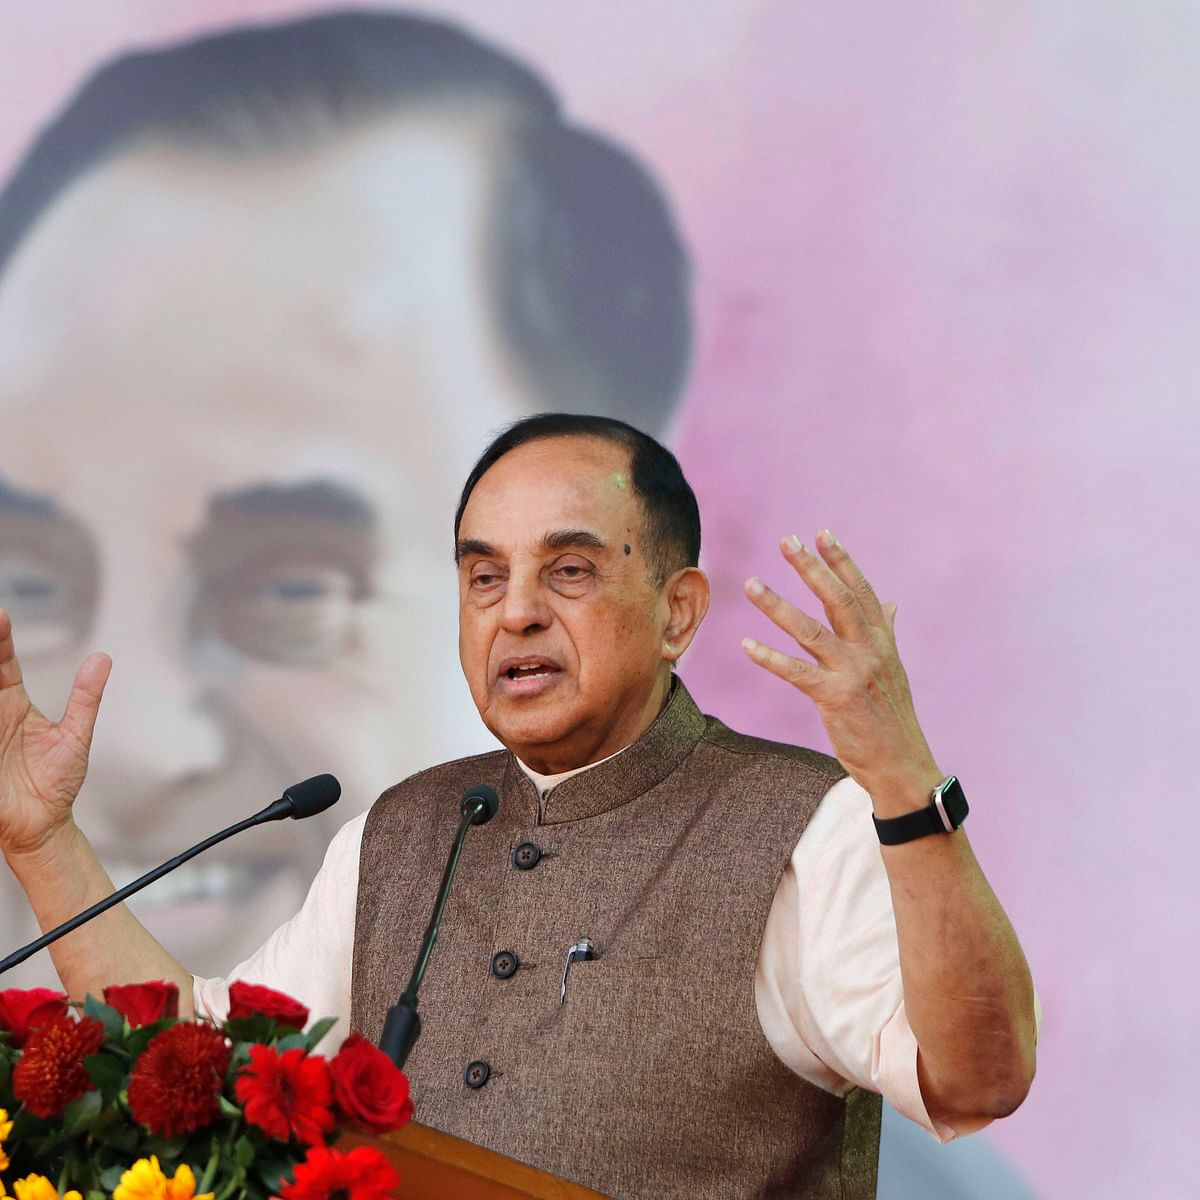 'India needs a new CAA': Subramanian Swamy slams Pakistan over video alleging Hindus in Sind are being 'starved to death'